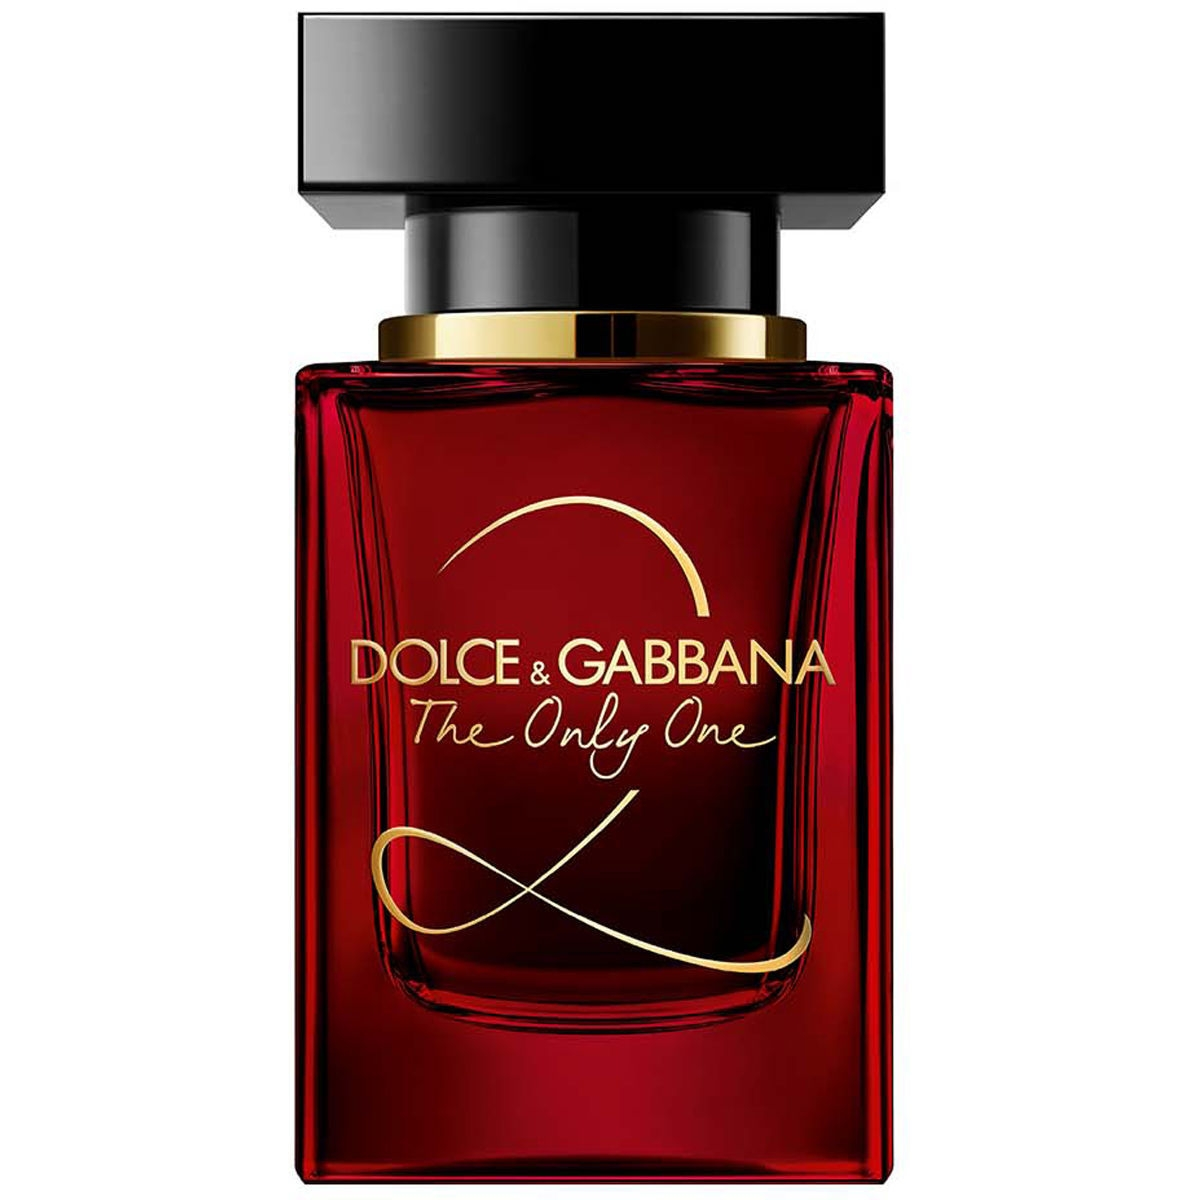 Dolce & Gabbana The Only One 2 (W) edp 30ml